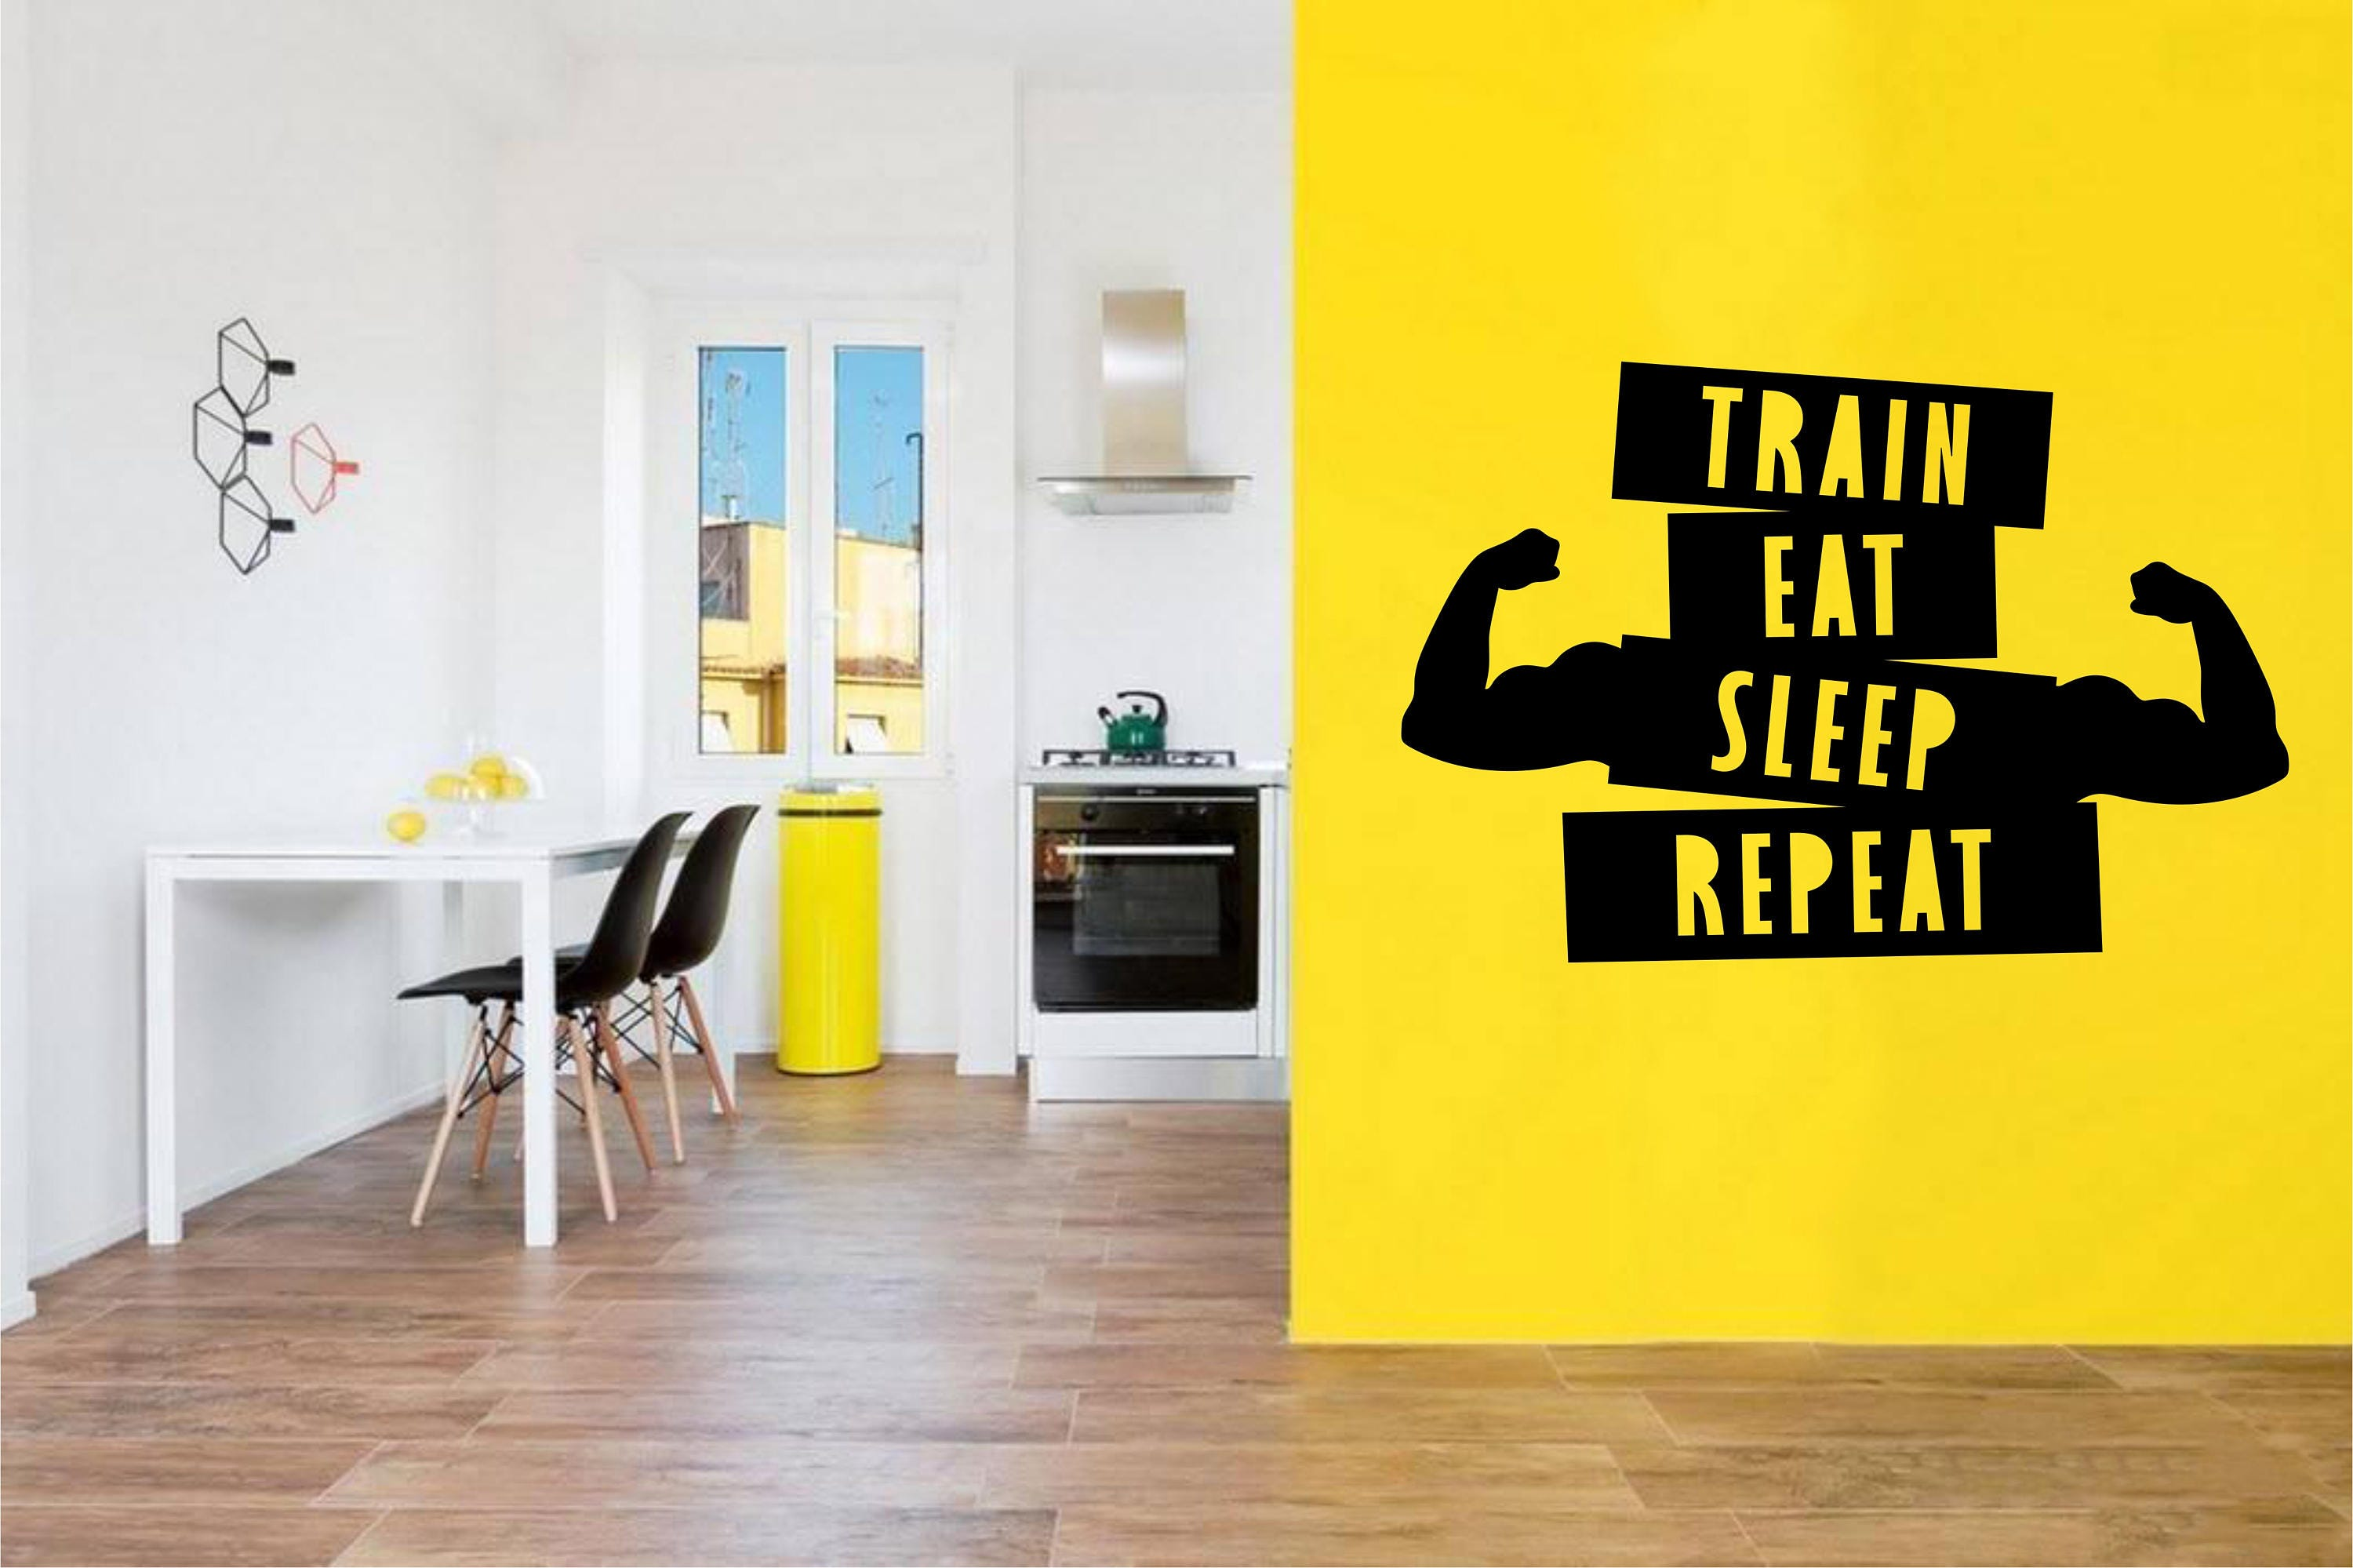 Train Eat Sleep Repeat Motivational Fitness Wall Decal for ...